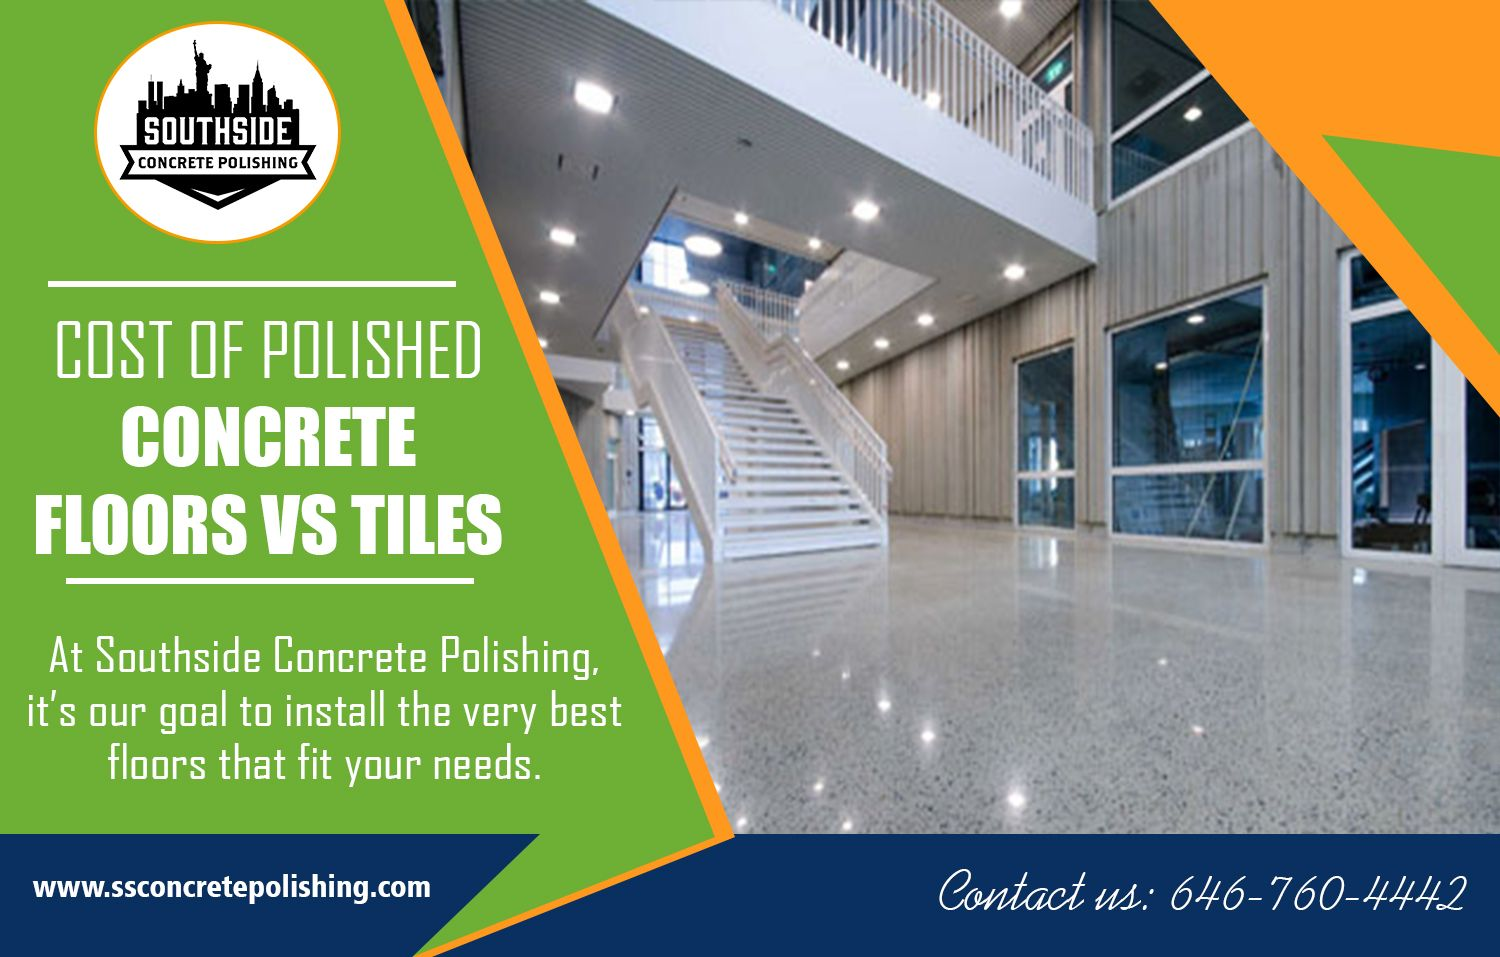 Cost Of Polished Concrete Floors Vs Tiles Concrete